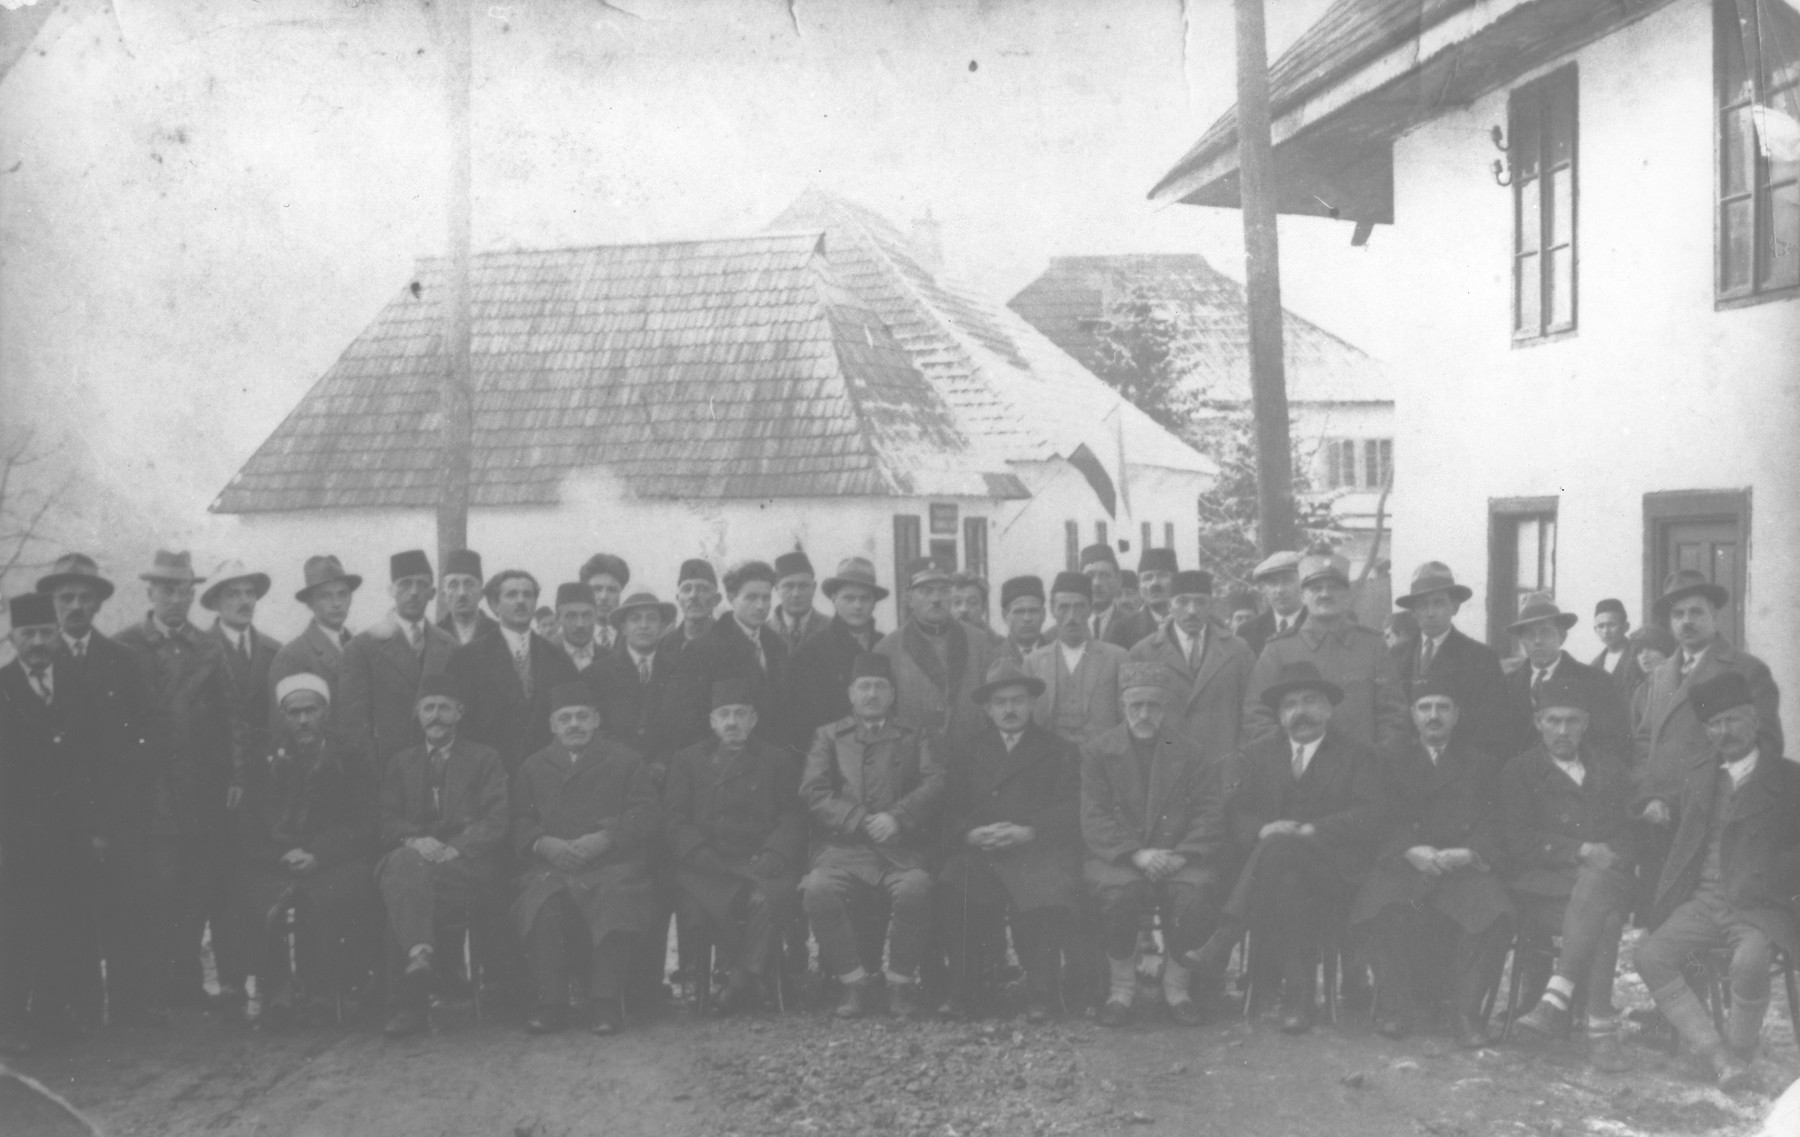 Group portrait of members of the Vlasenica town council.  Among those pictured are the Jewish brothers, Sumbul and Santo Altarac.